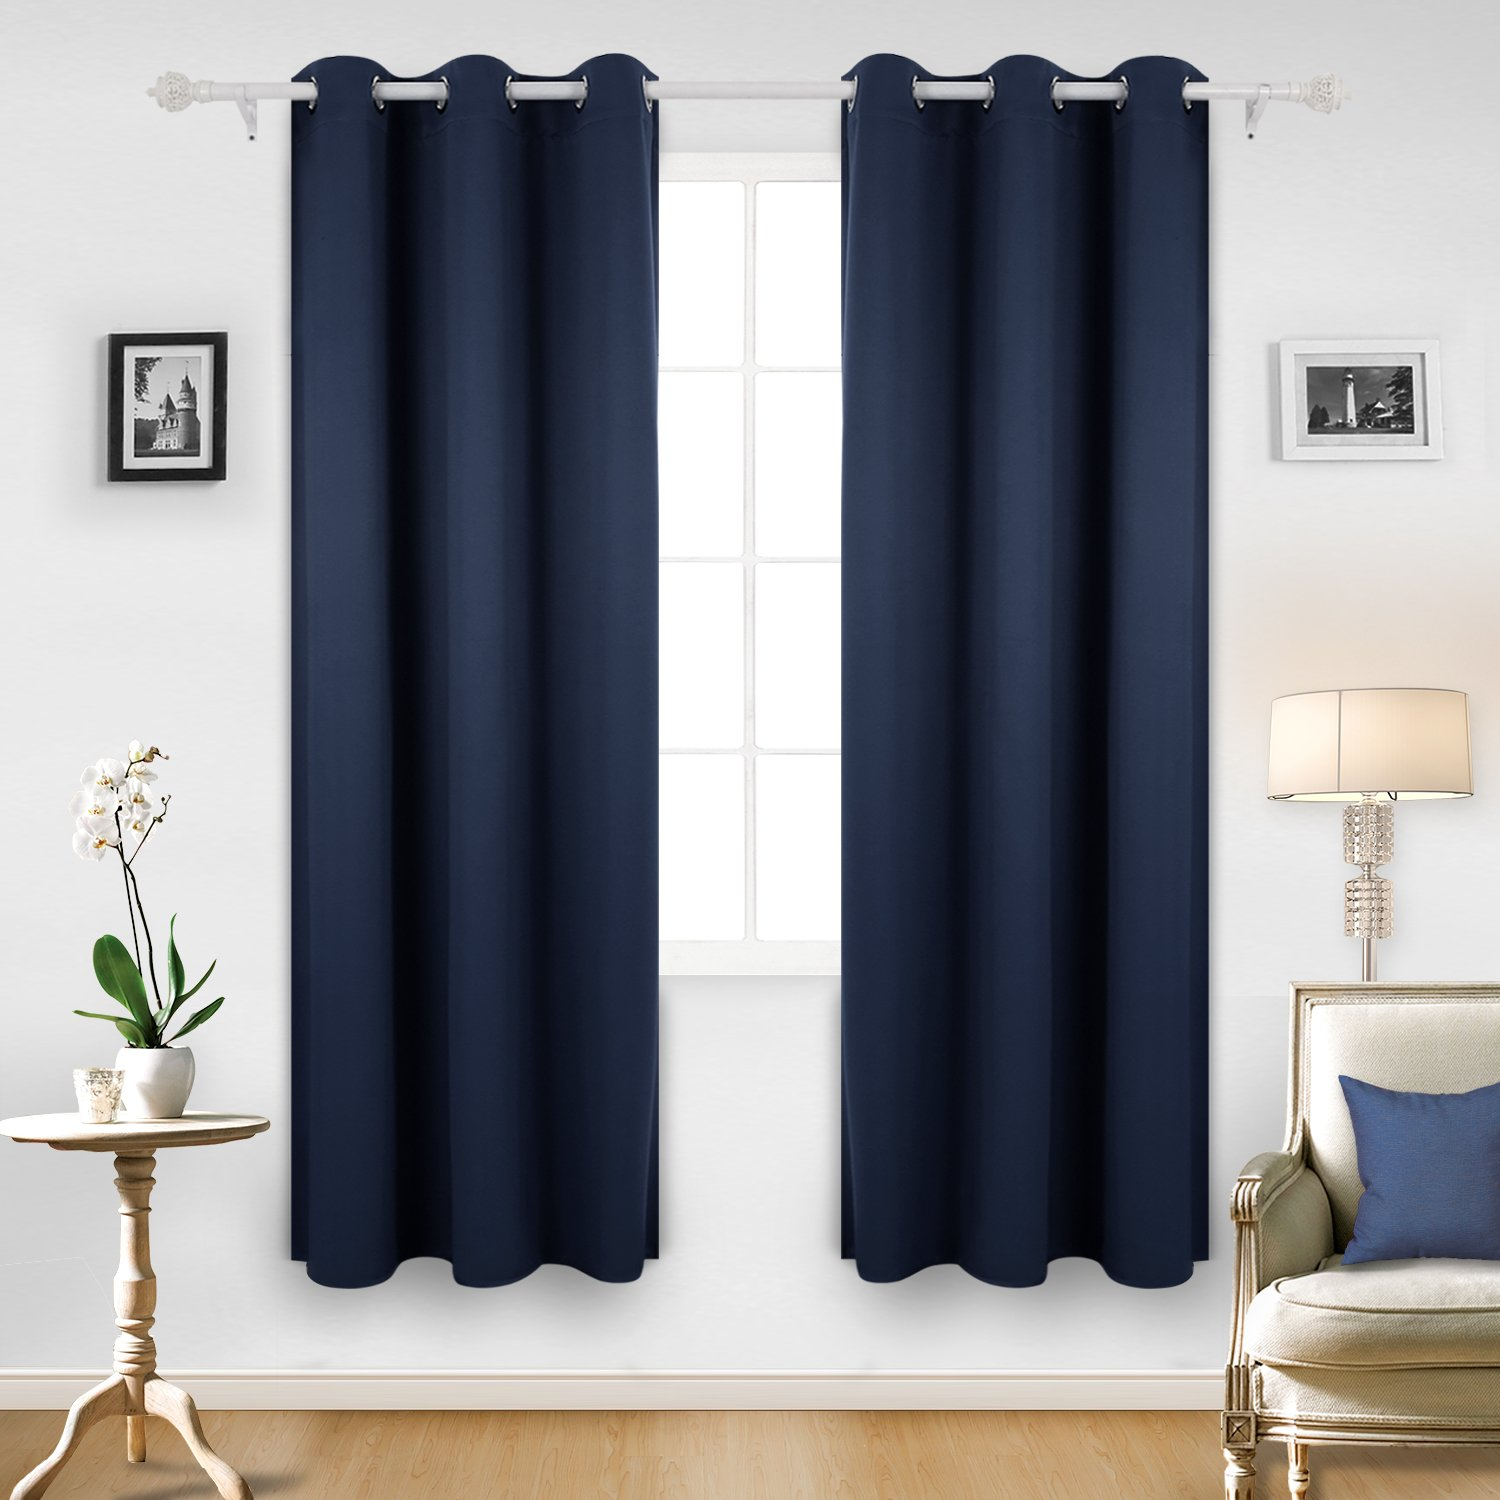 Deconovo Room Darkening Thermal Insulated Blackout Grommet Window Curtain for Bedroom, Navy Blue